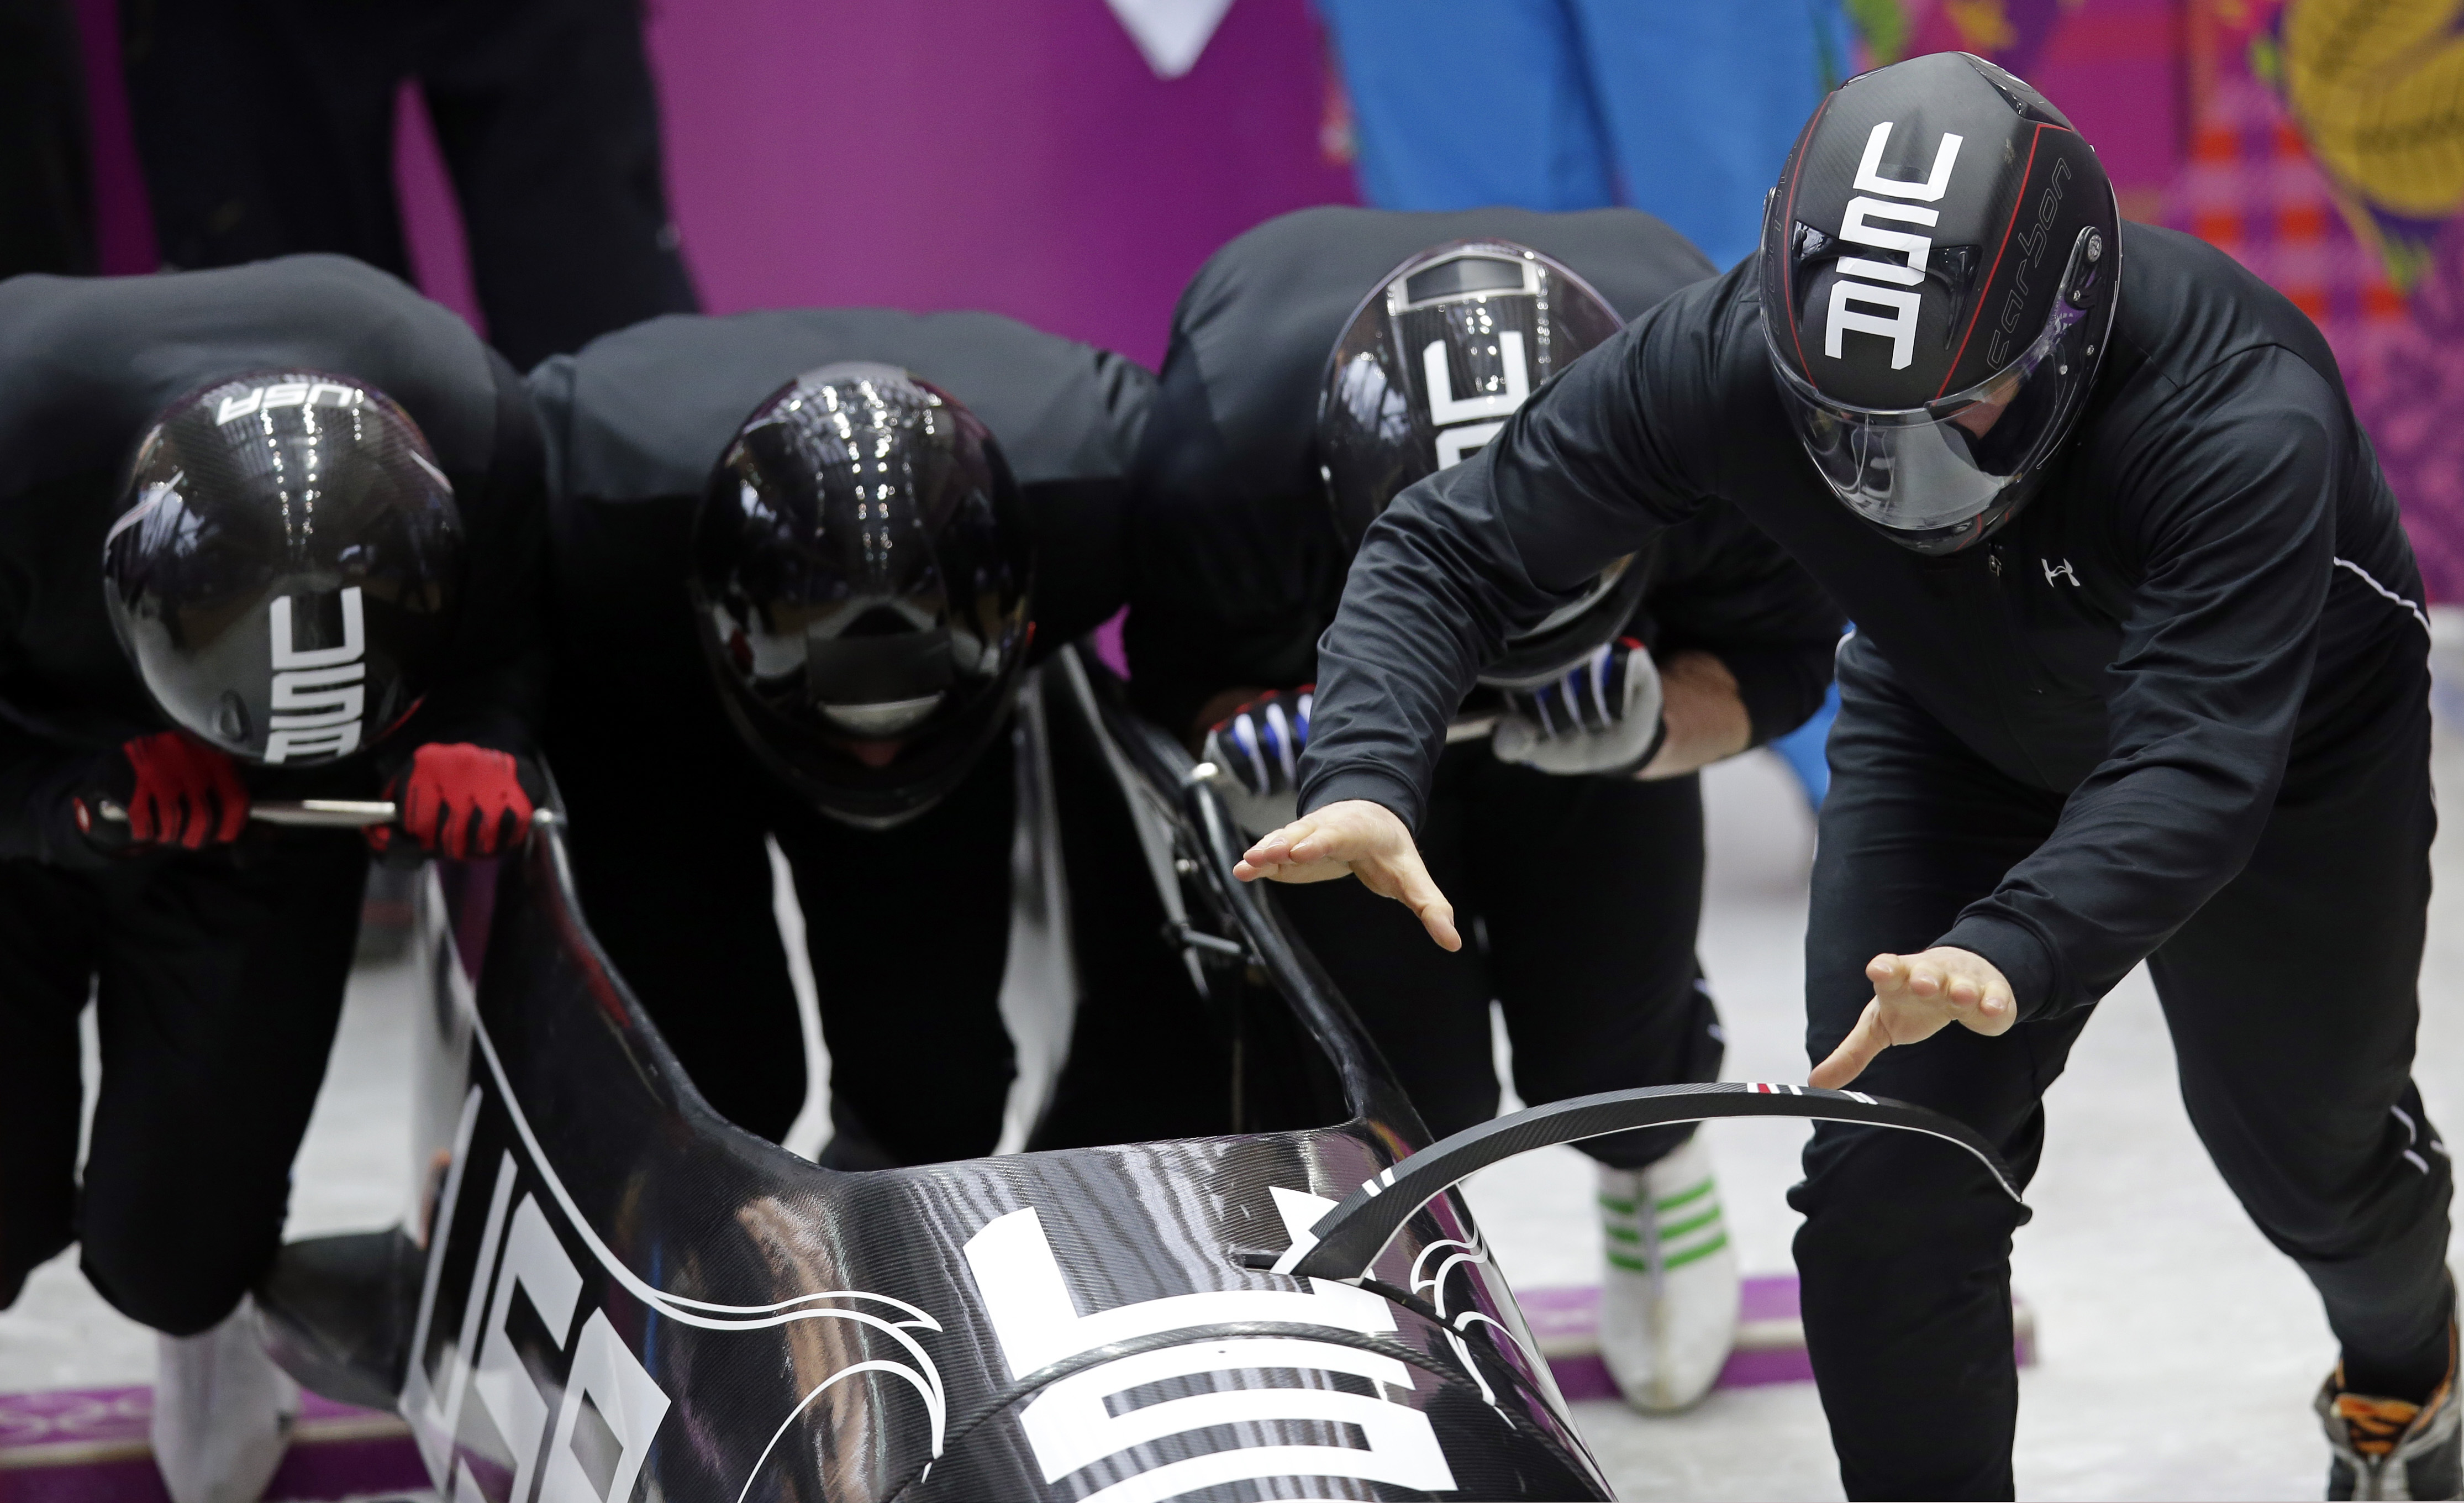 The team from the United States USA-1, piloted by Steven Holcomb, start a run during the men's four-man bobsled training at the 2014 Winter Olympics, Thursday, Feb. 20, 2014, in Krasnaya Polyana, Russia. (AP Photo/Michael Sohn)